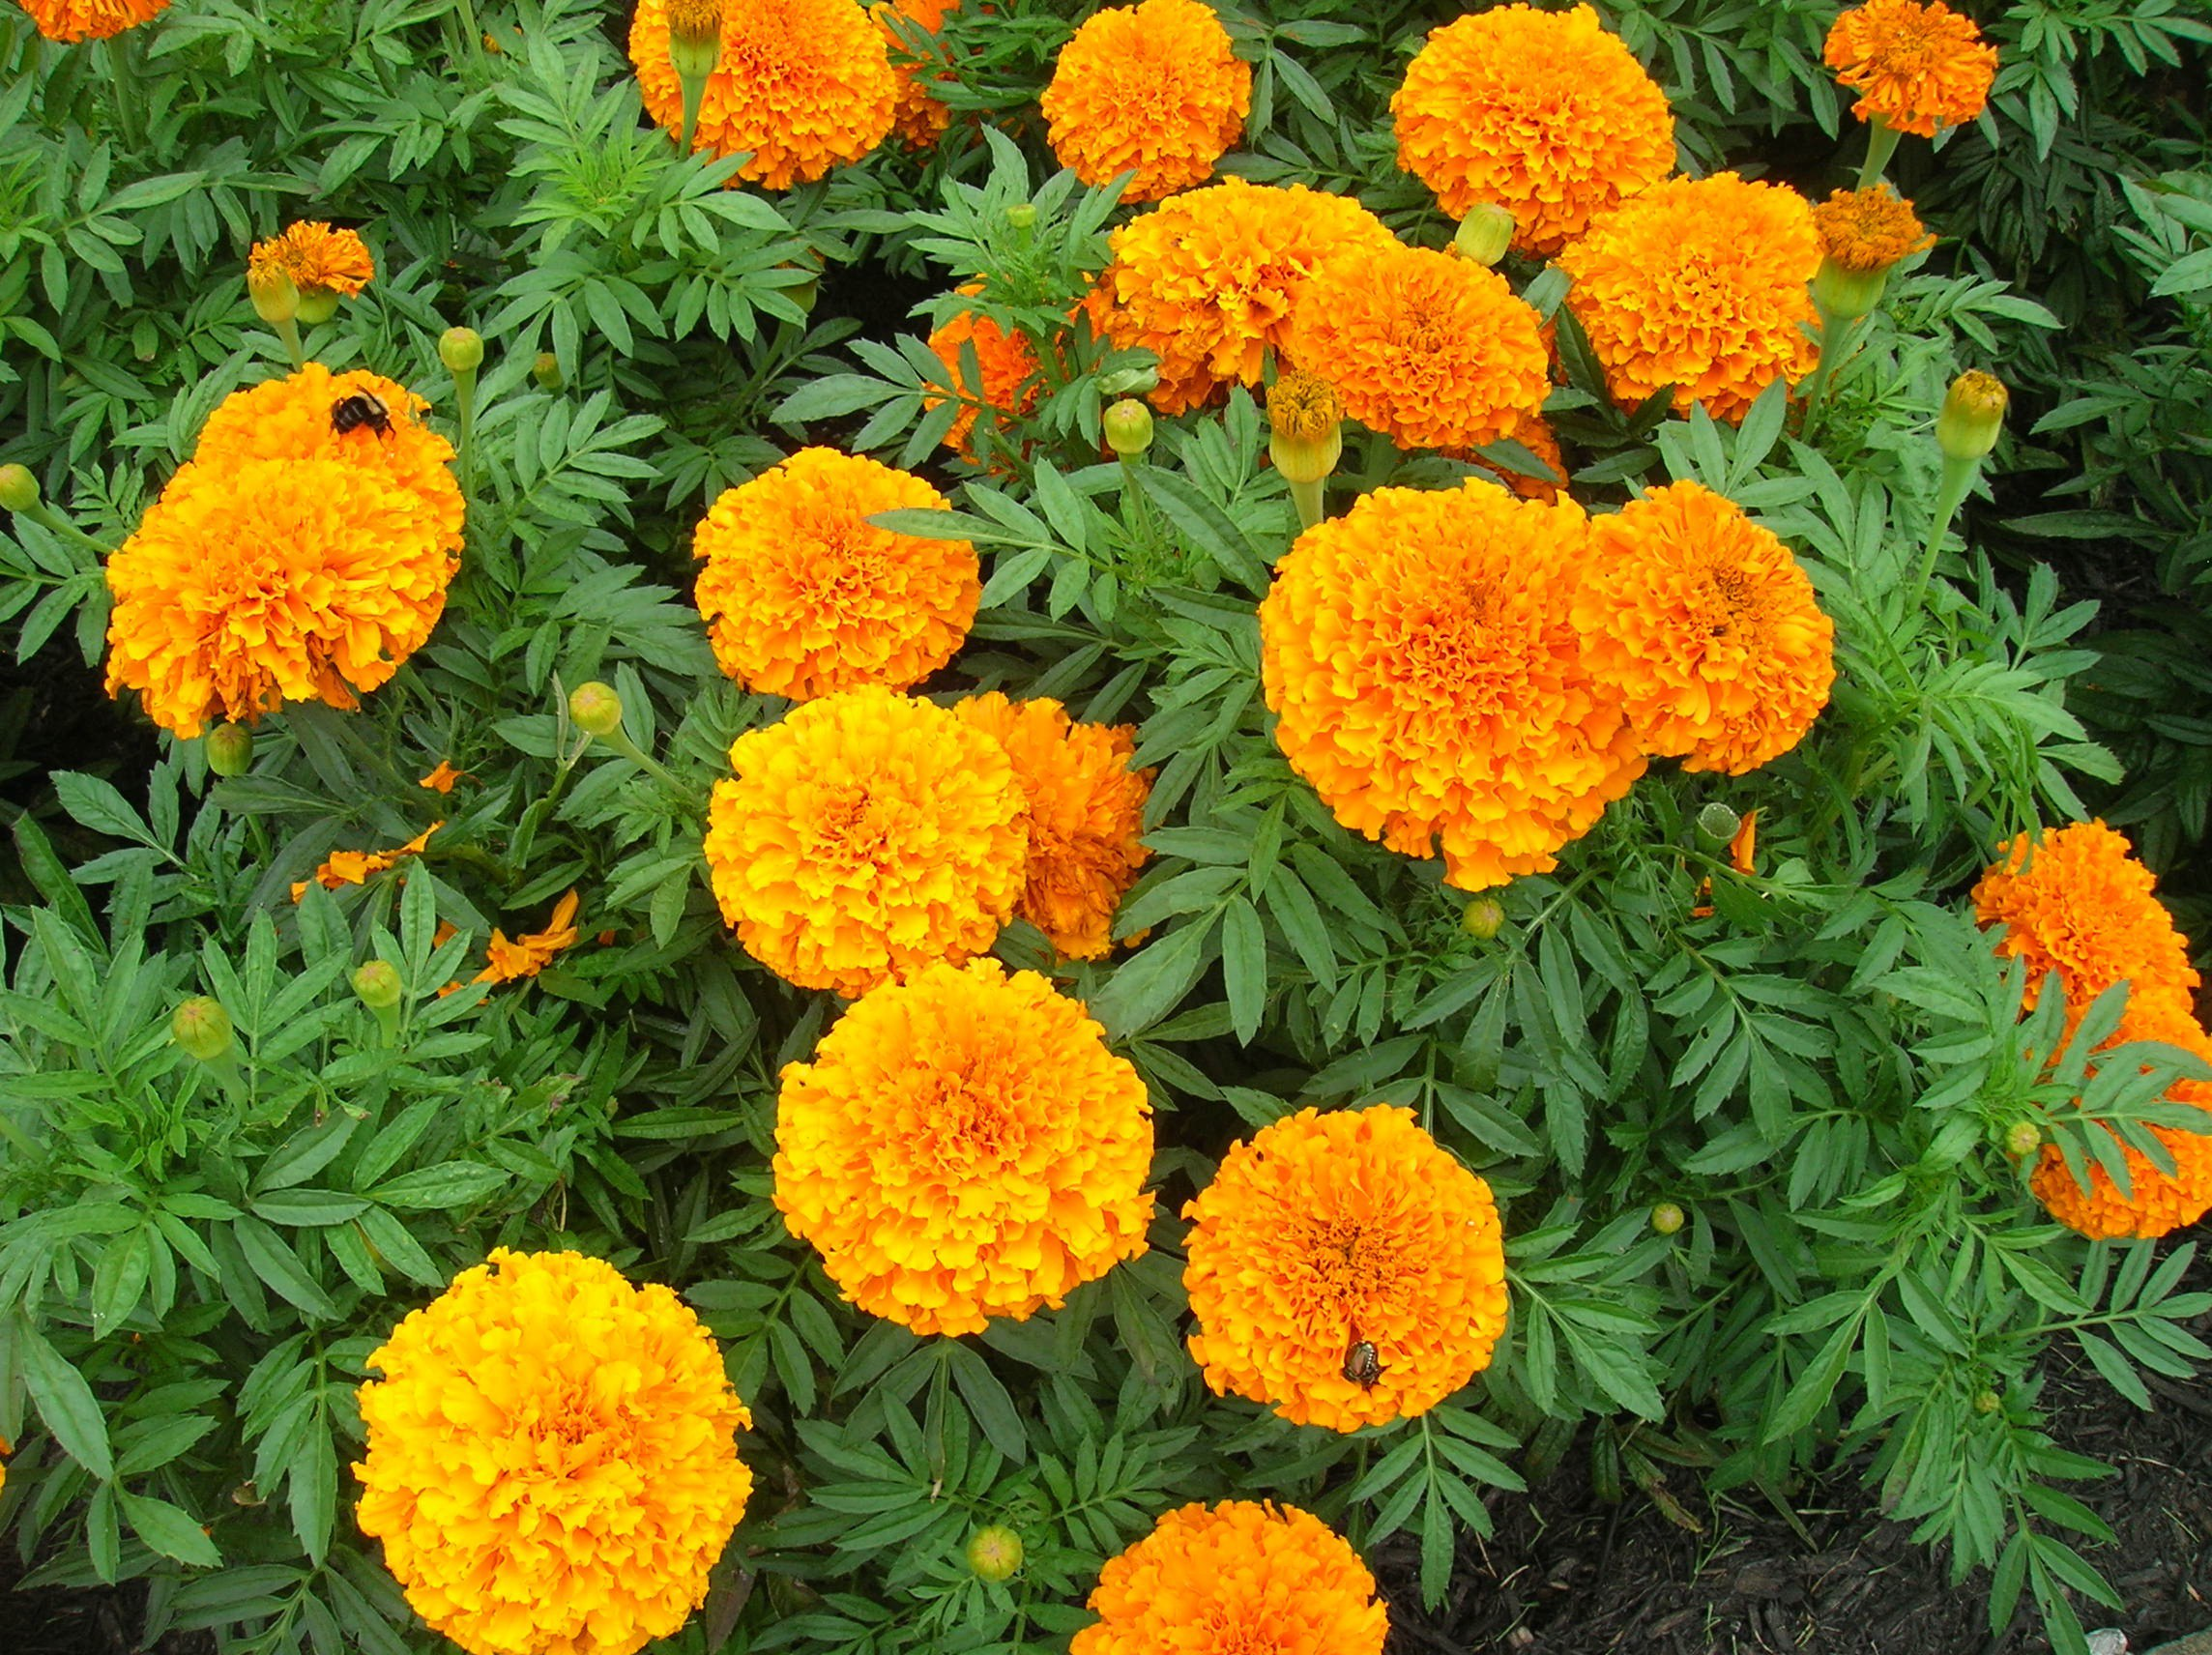 Marigolds downtown plant.jpg